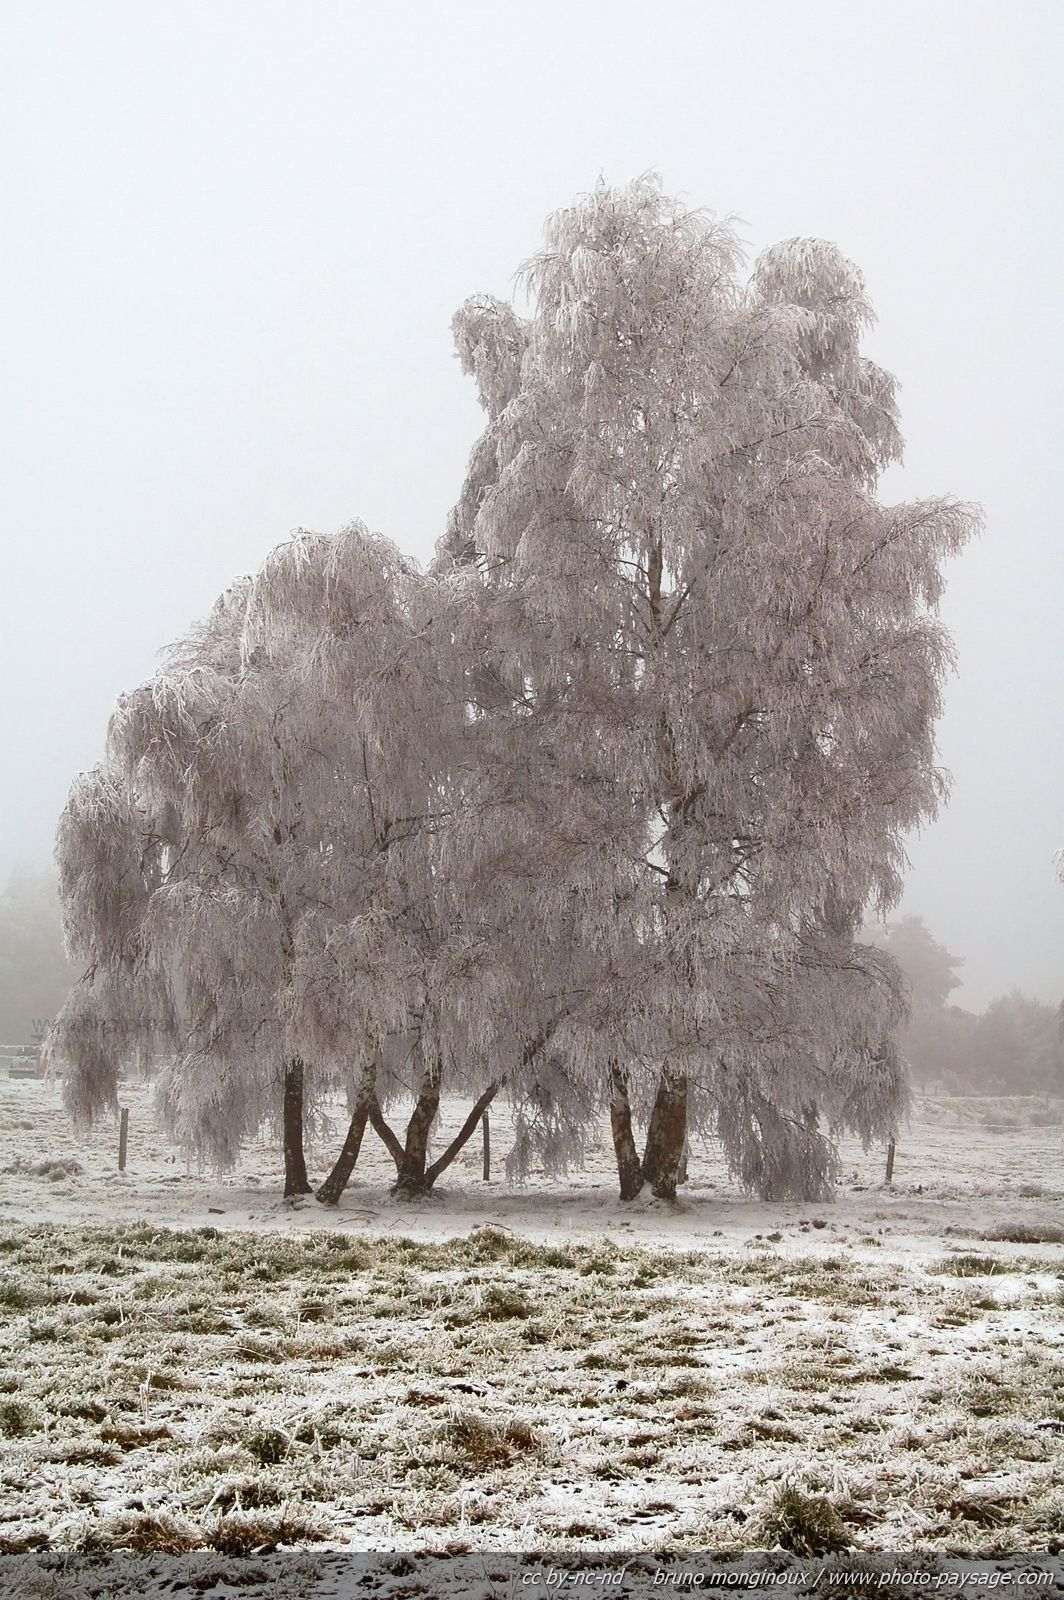 Trees covered with frost in winter. Picture shot in middle France mountains (Massif Central).